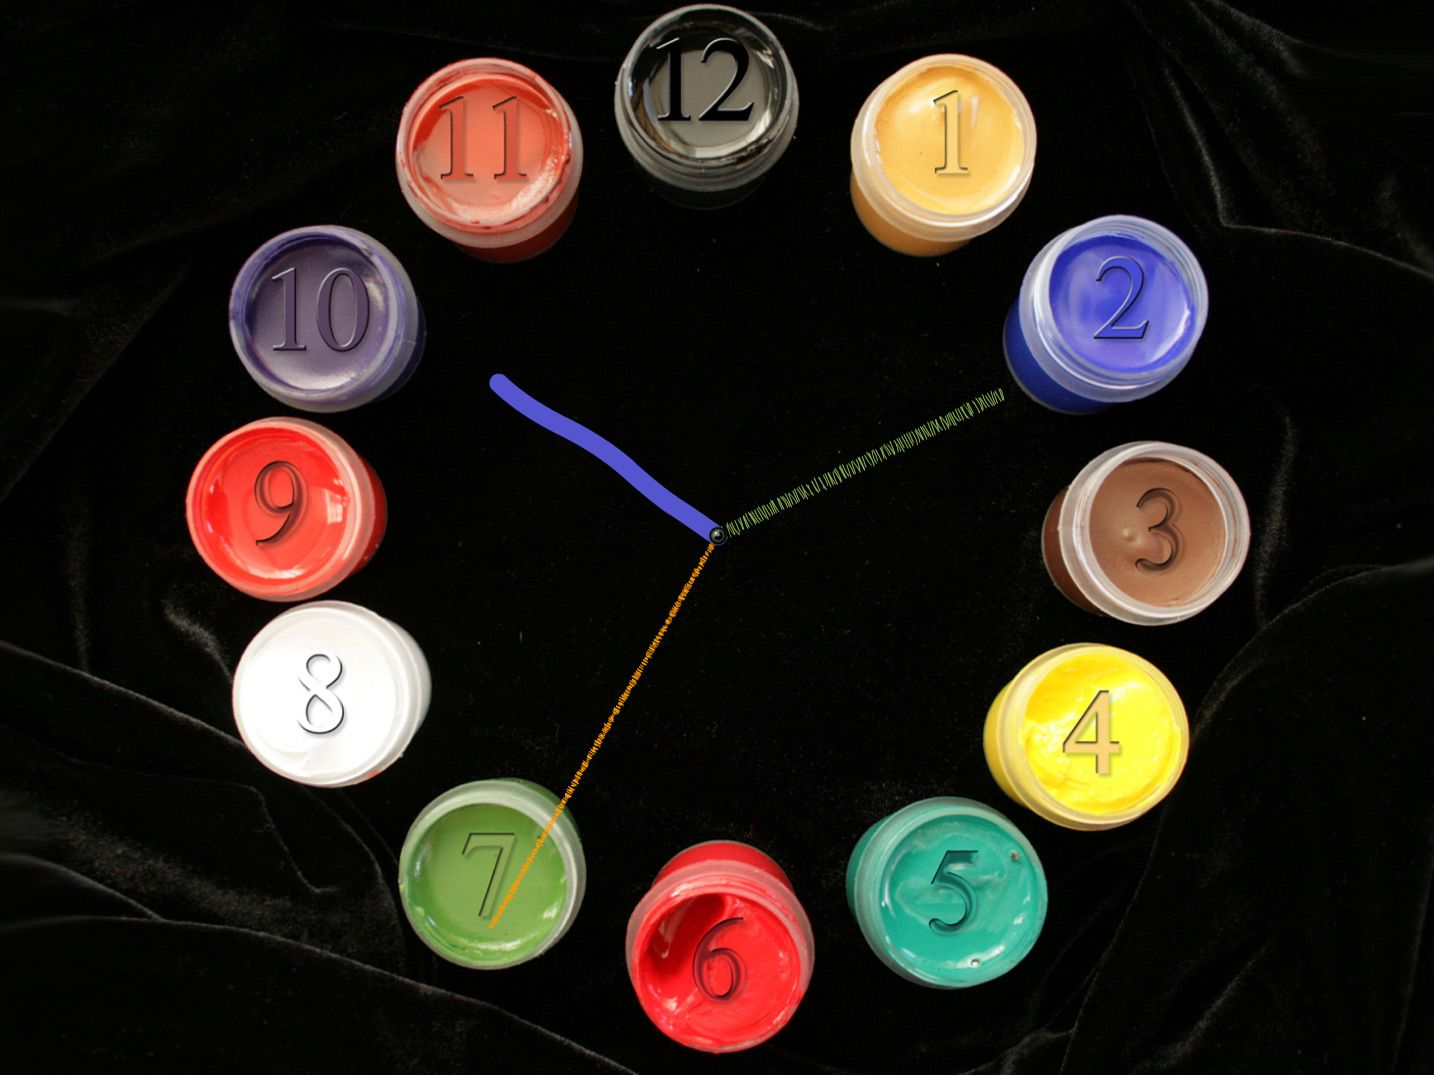 paintbrush clock screensaver 2.4 free download for windows 8